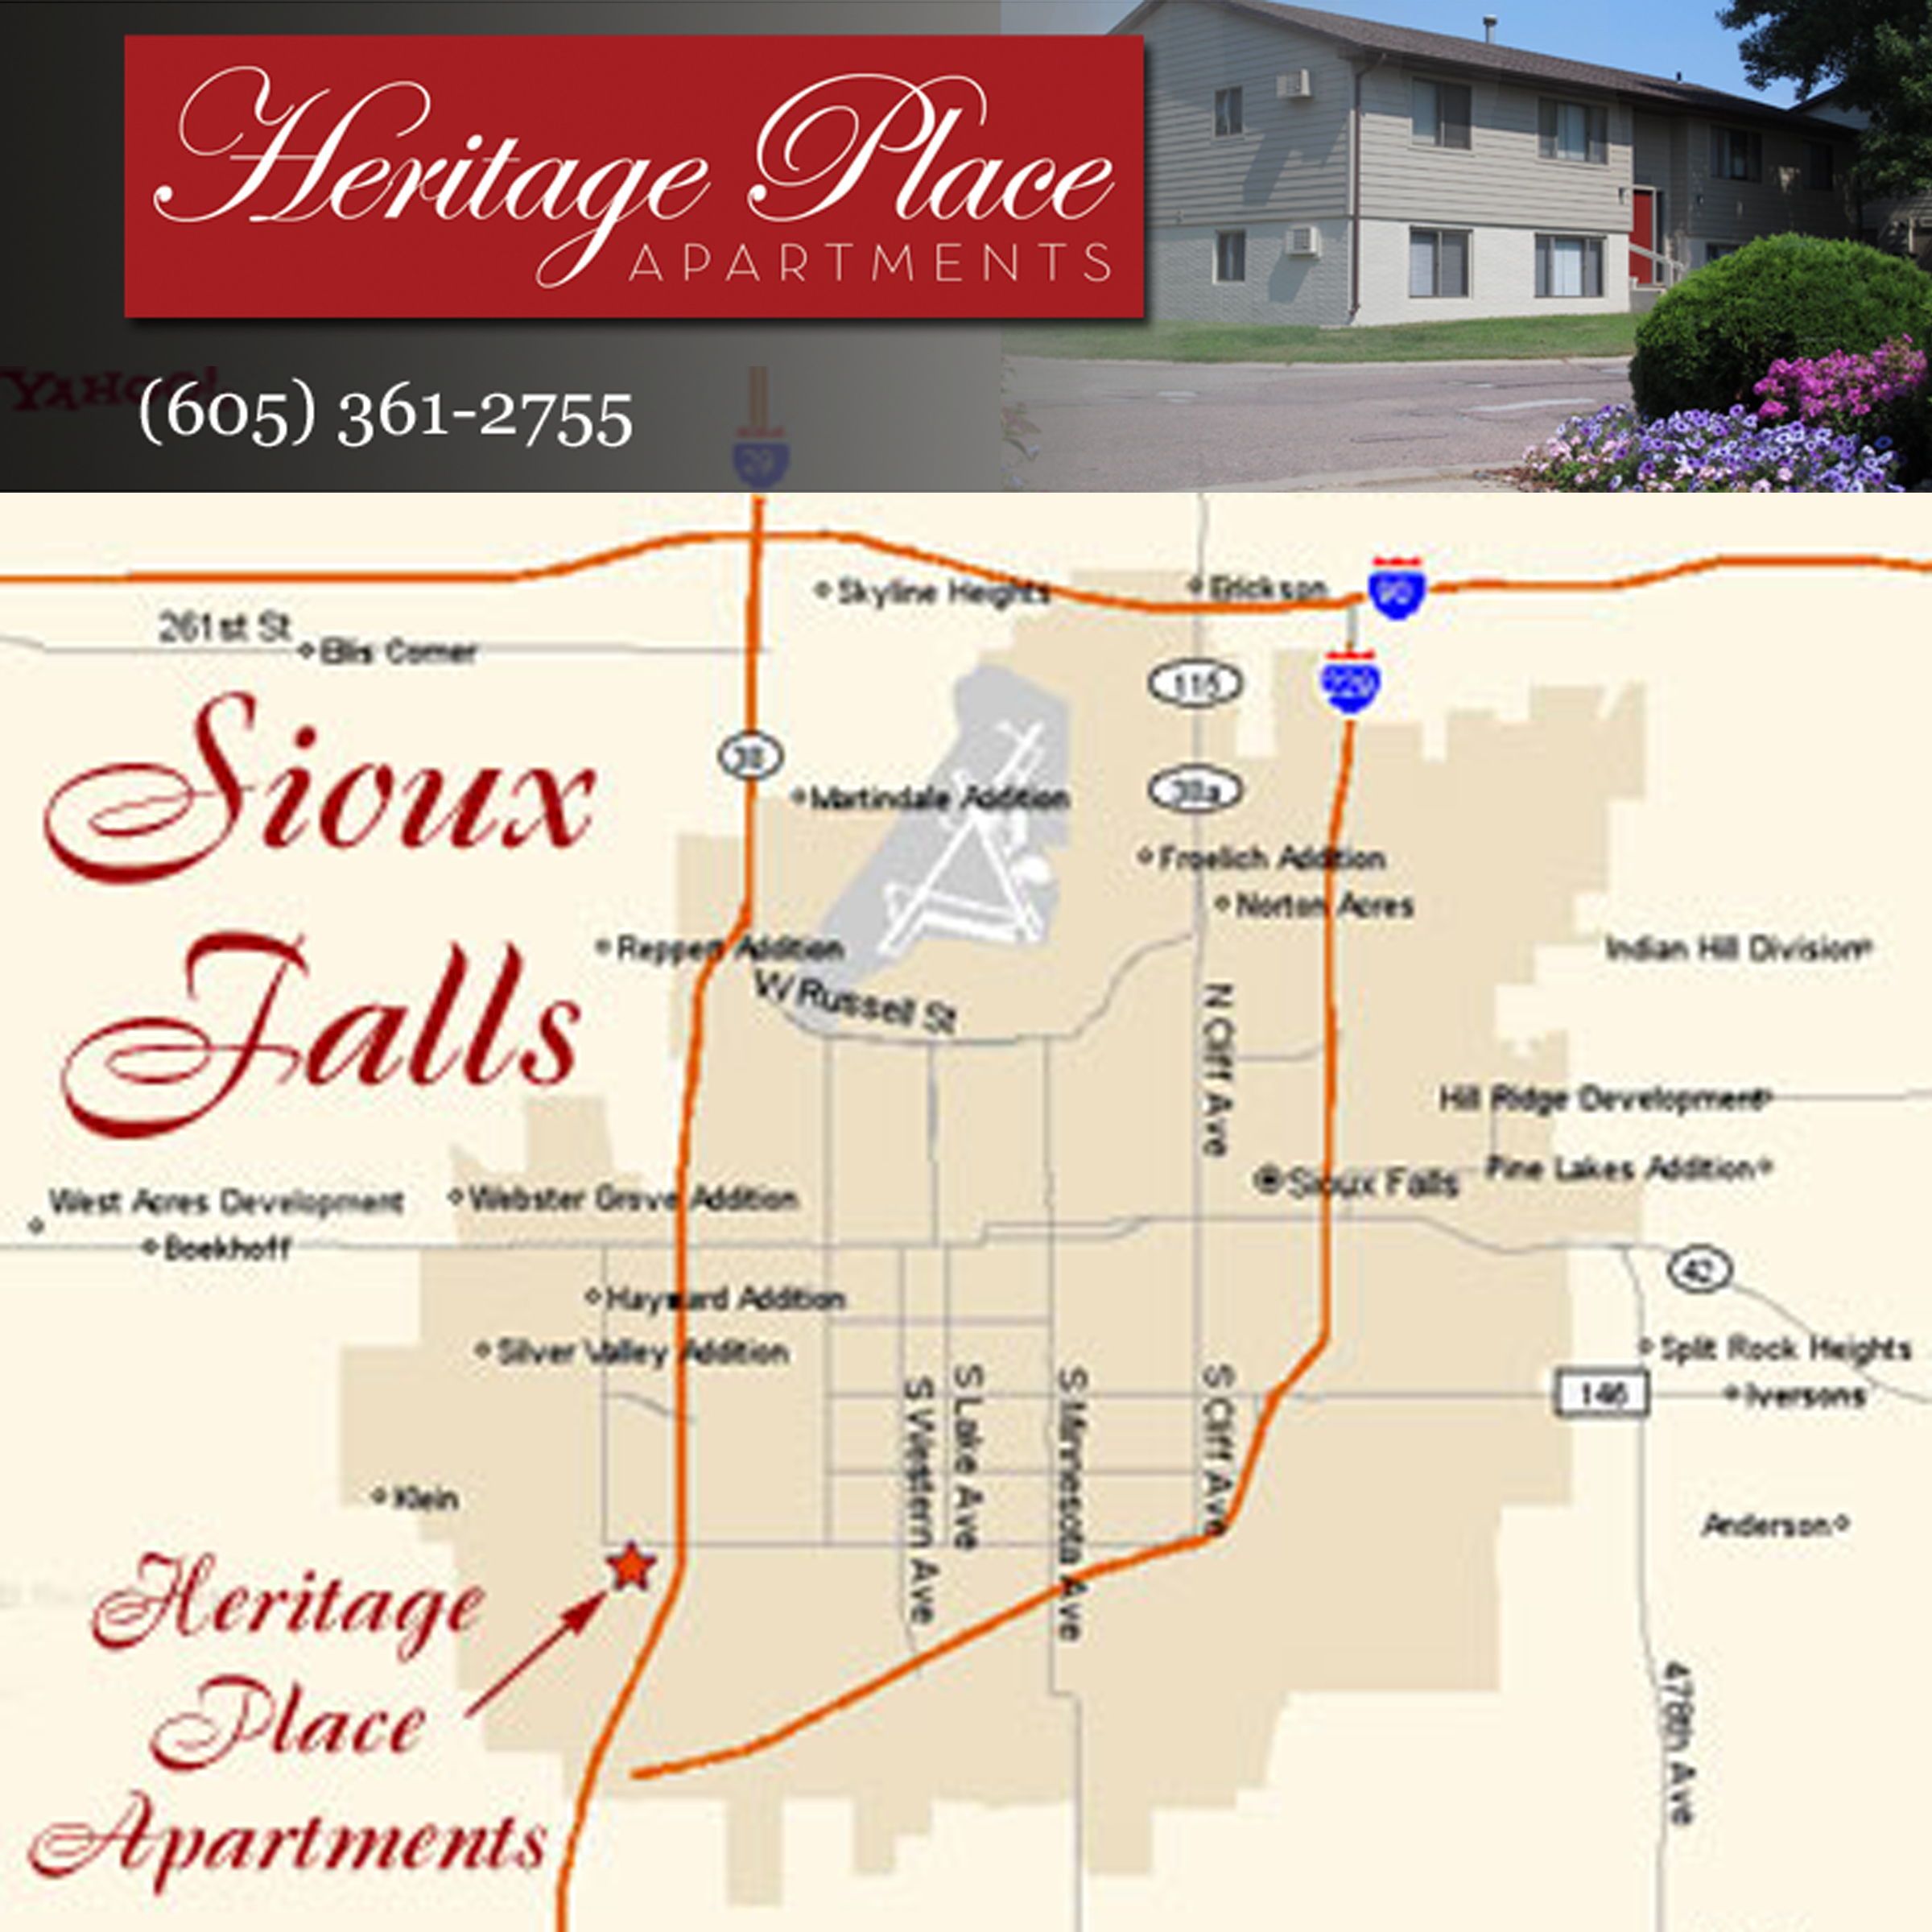 Heritage Place Apartments